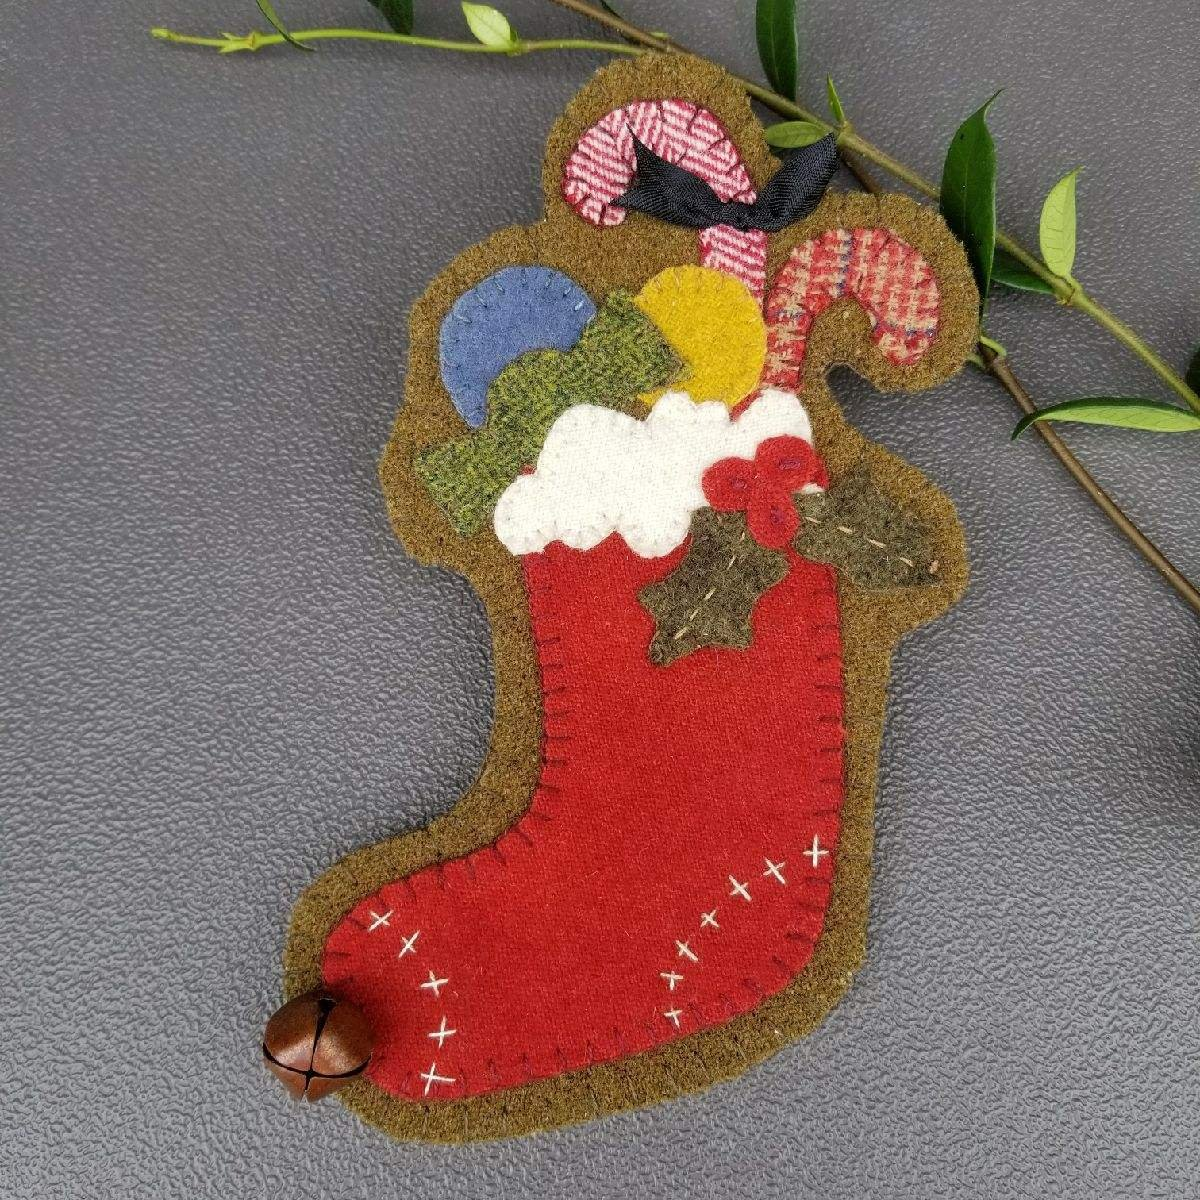 3 CANDY CANE STOCKING ORNAMENT